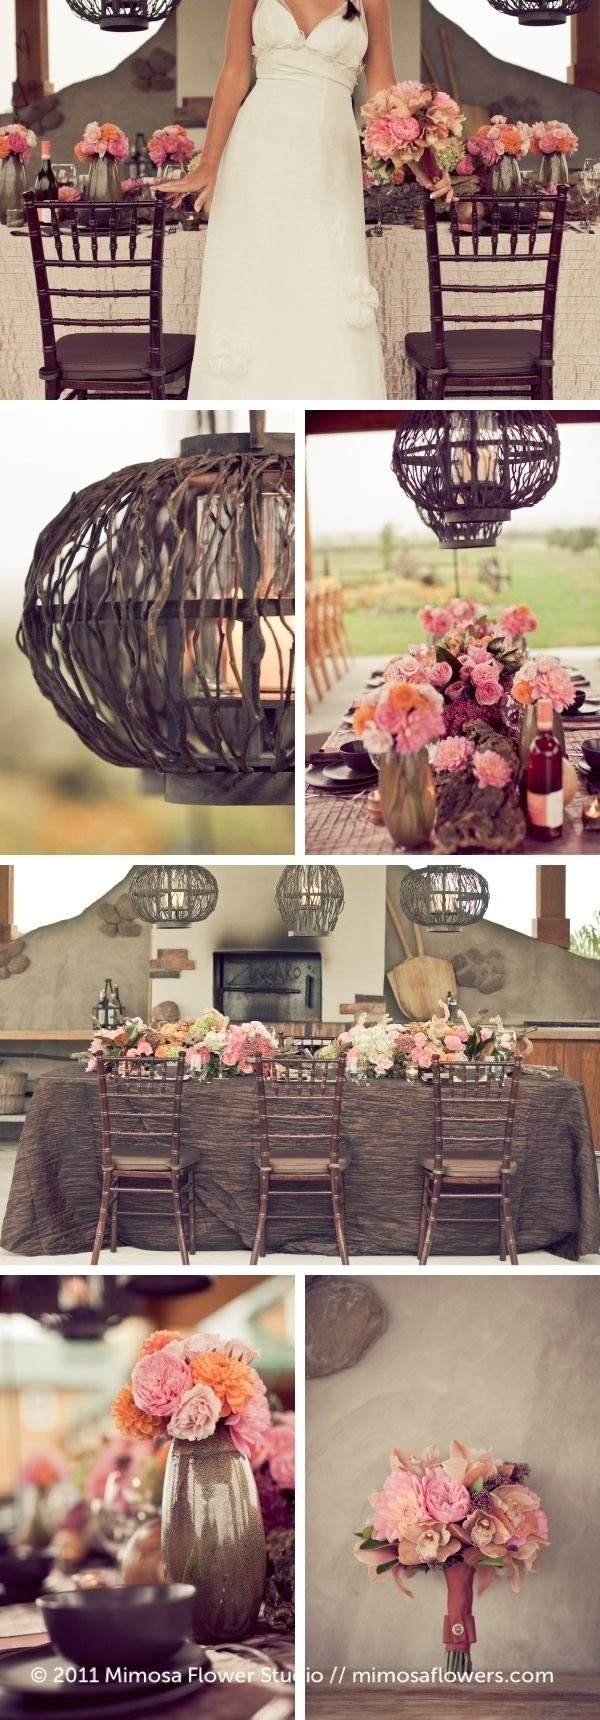 10 Fantastic Pink And Brown Wedding Ideas 51 best pink and brown wedding images on pinterest brown brown 1 2021